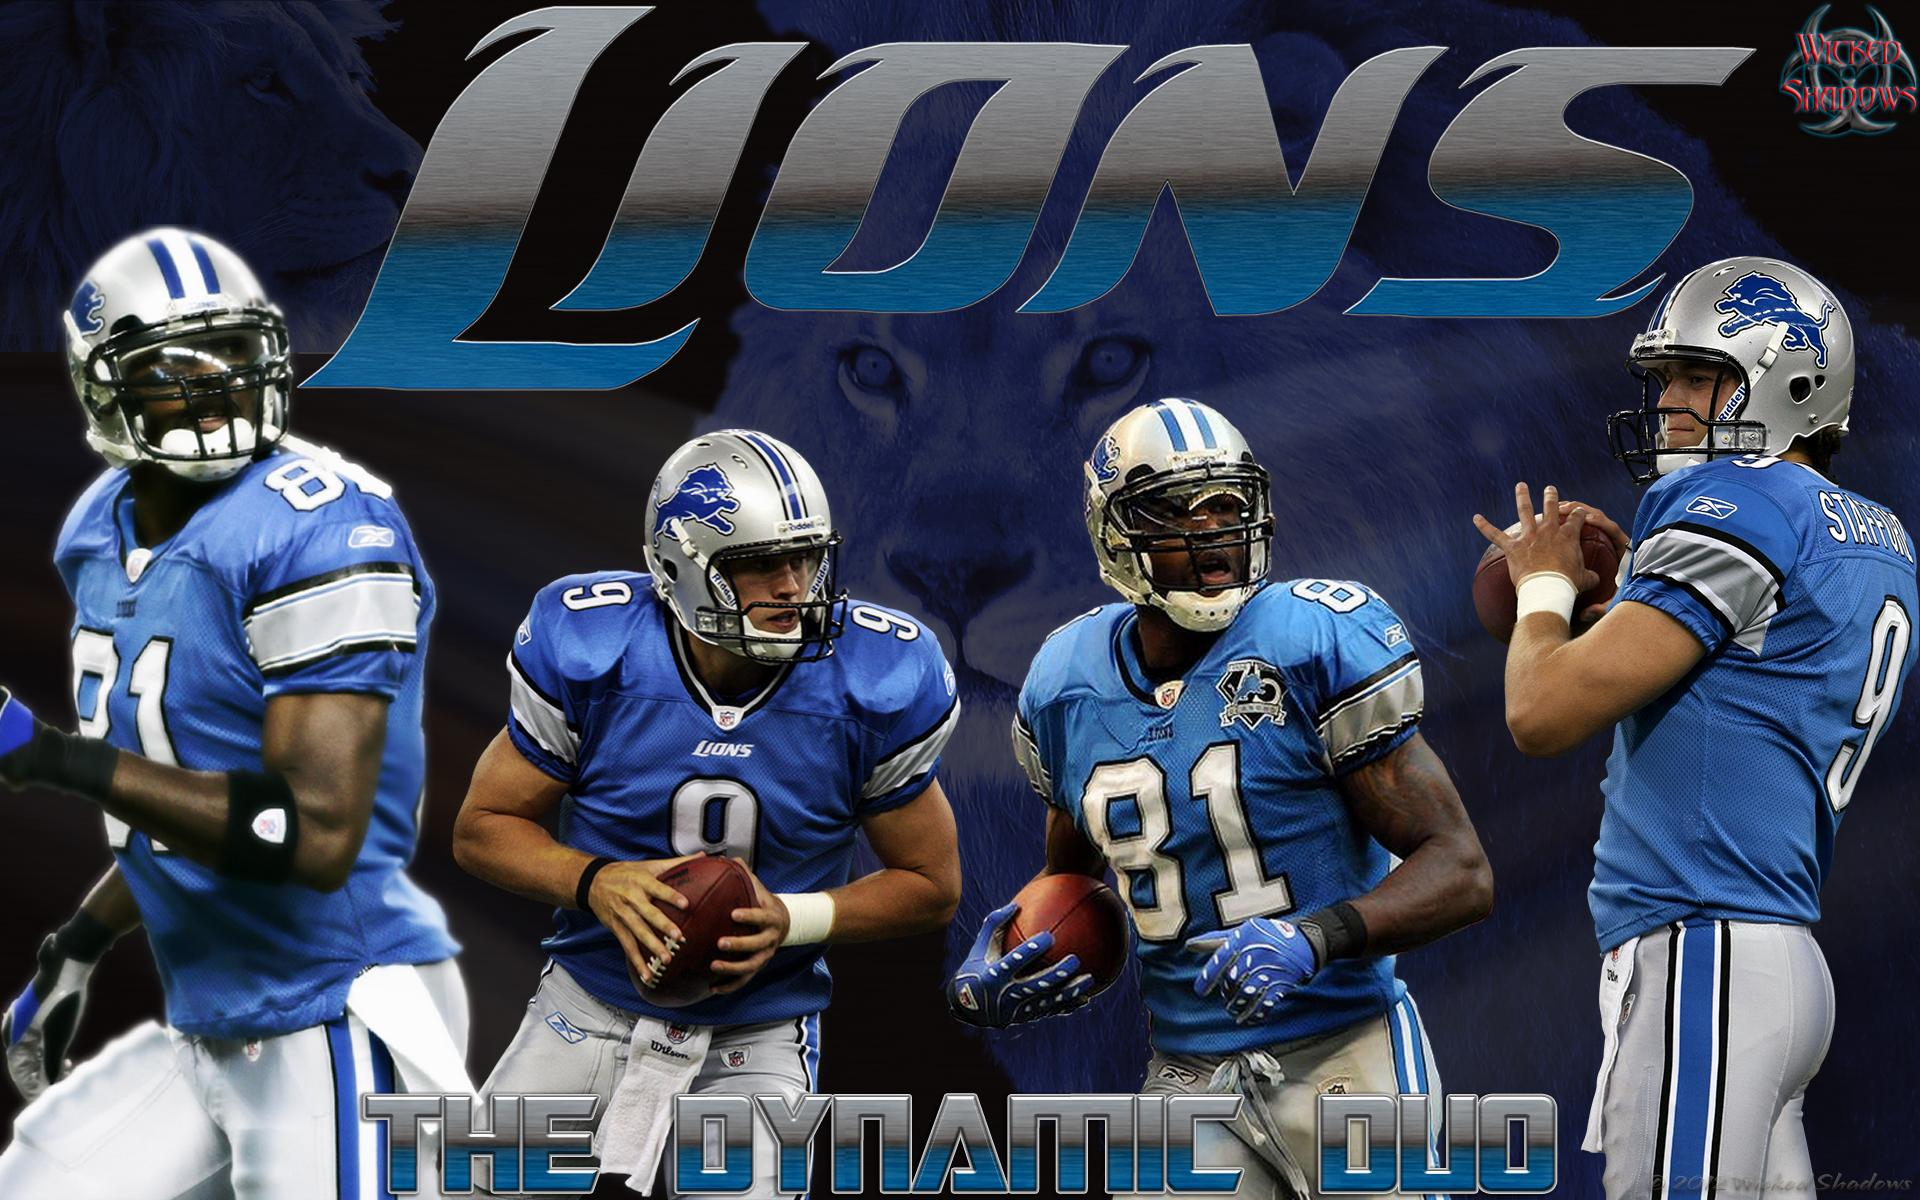 Wallpapers By Wicked Shadows: Detroit Lions NFL wallpapers 1920x1200